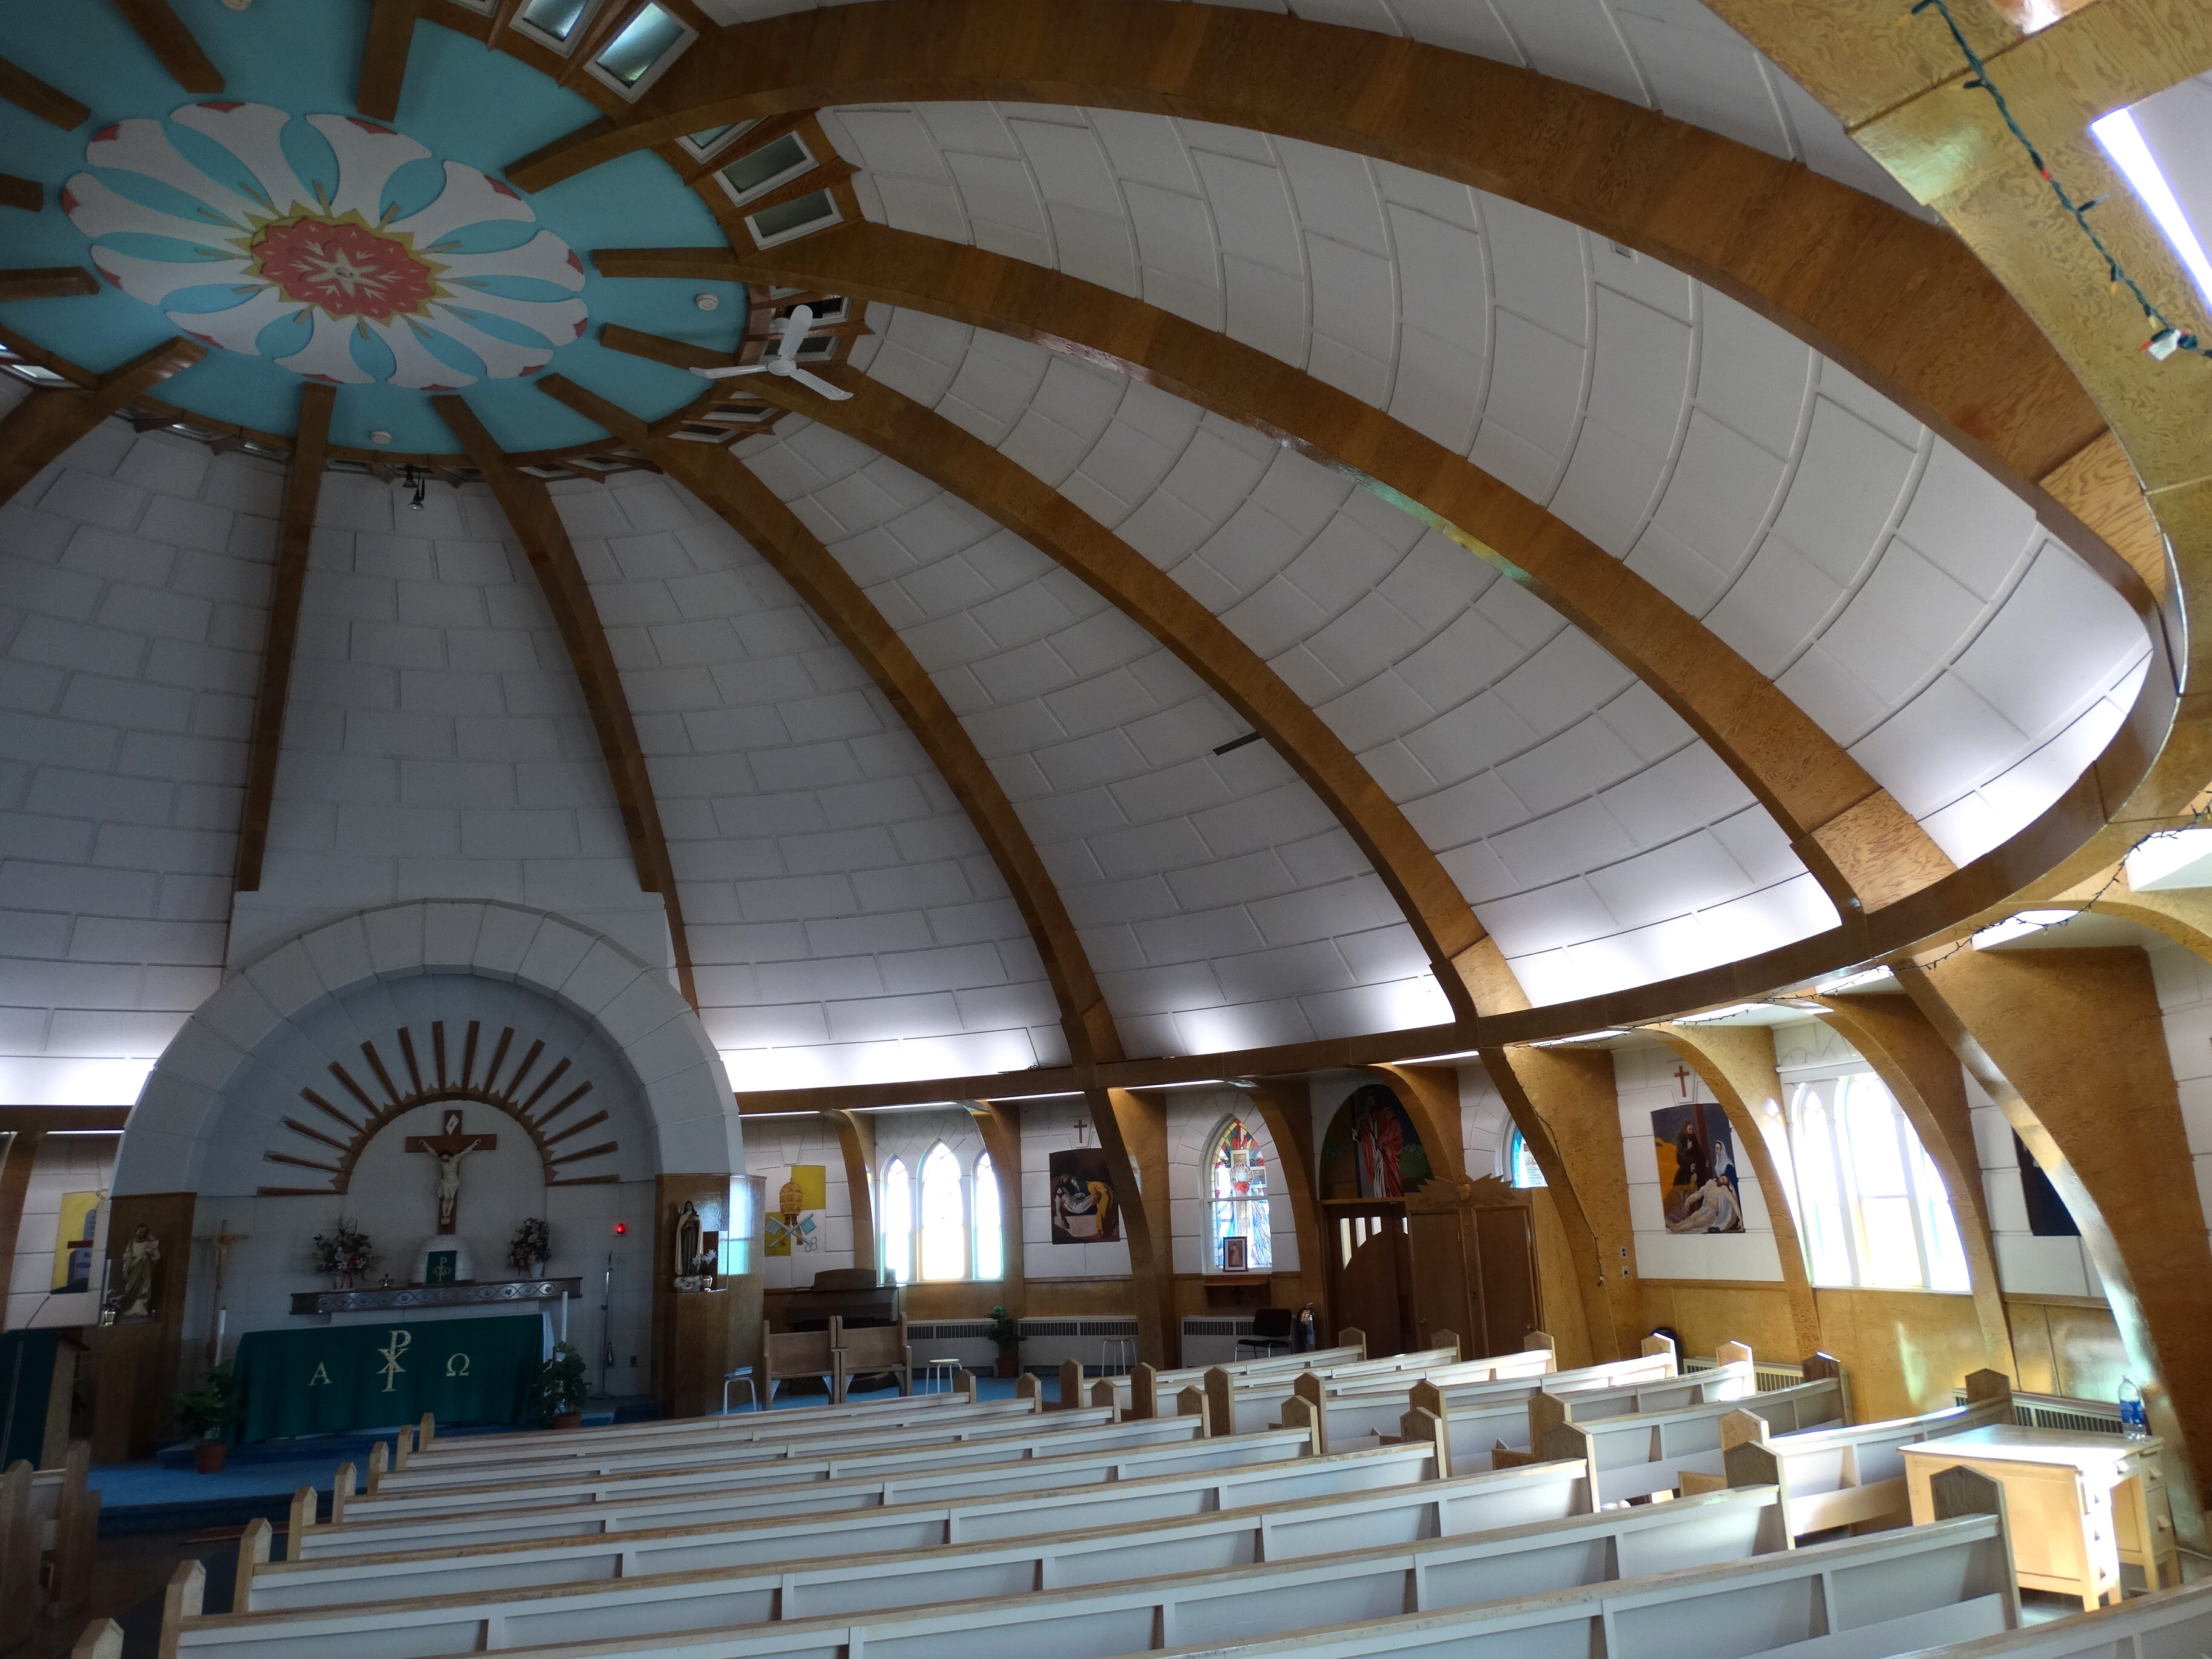 File:Interior of Our Lady of Victory - Igloo-Shaped Church ...